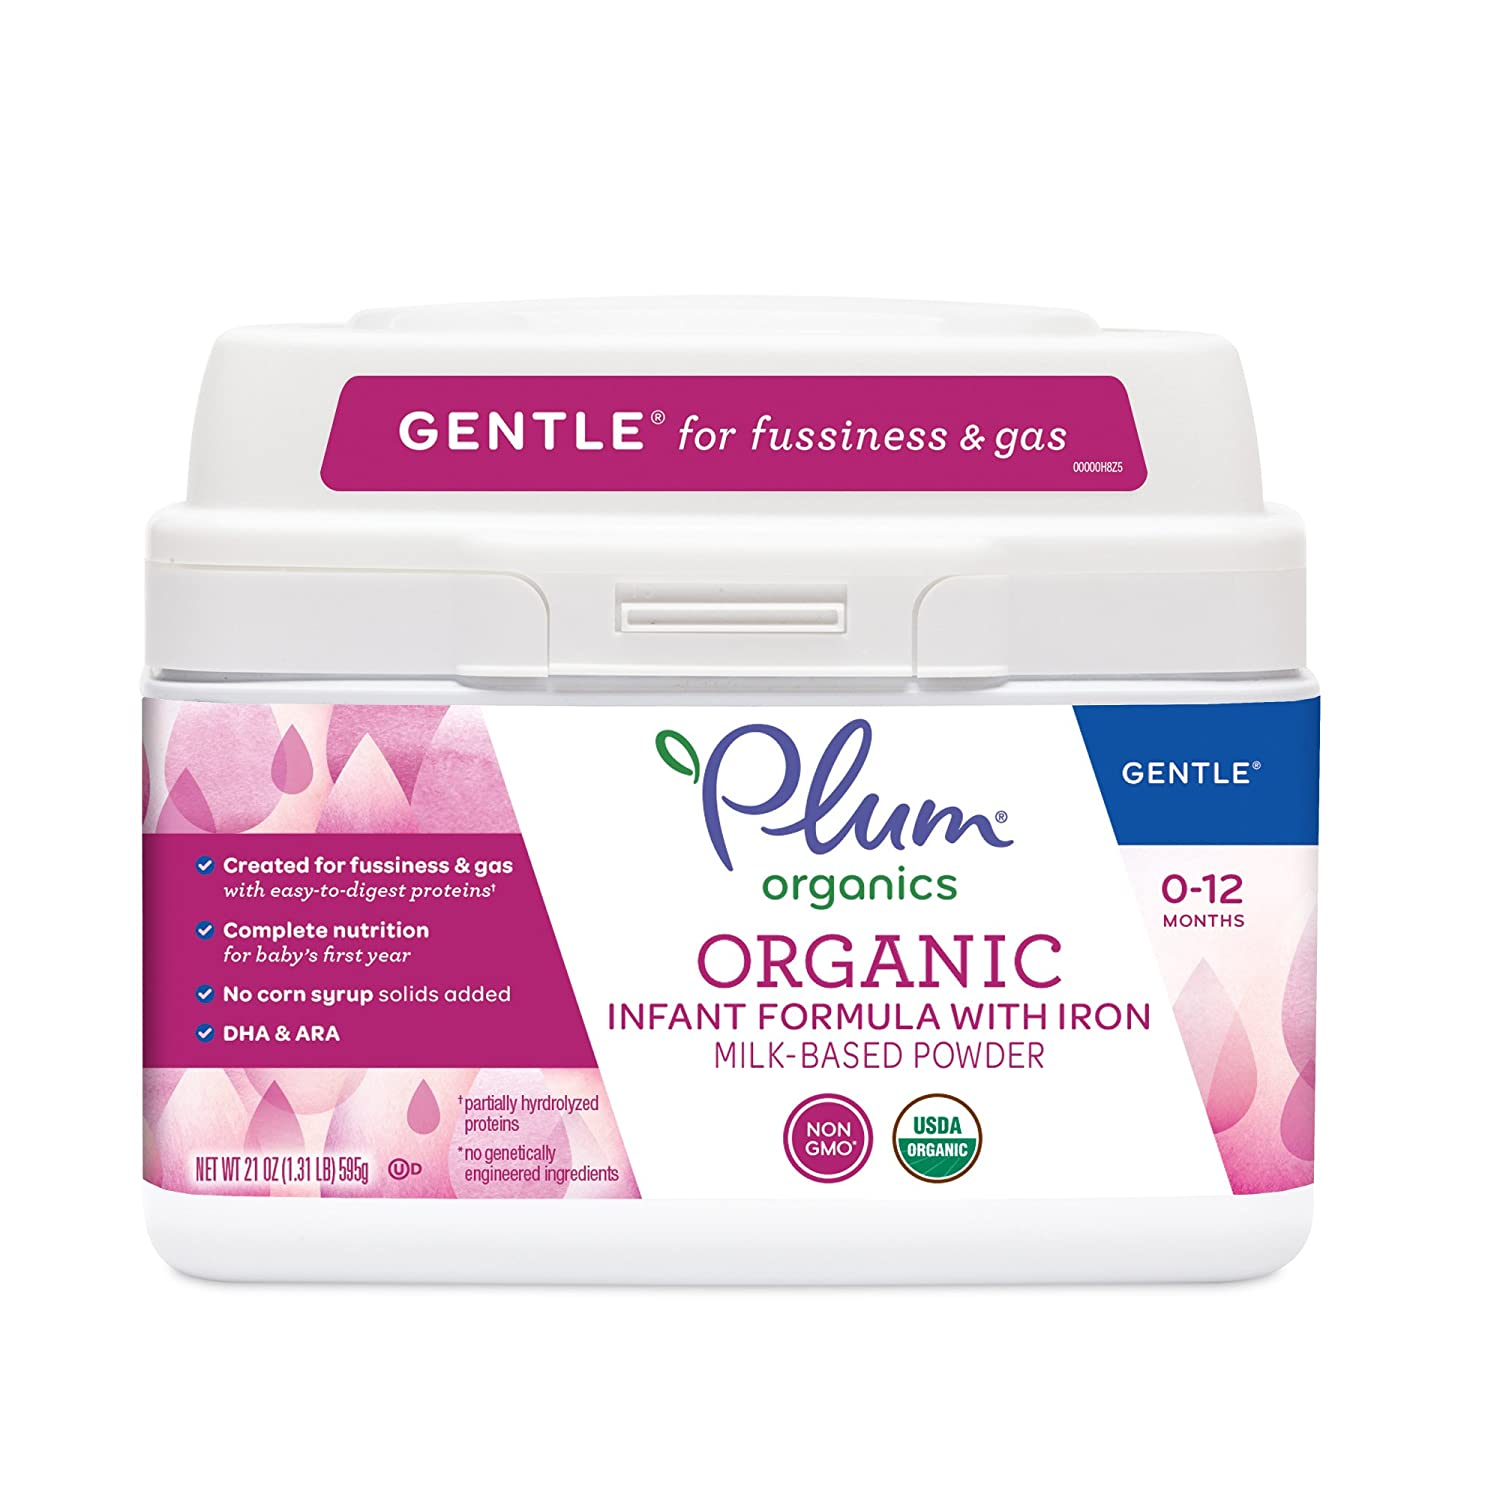 Plum Organics, Organic Infant Formula with Iron, 21 ounce (Packaging May Vary) Nest Collective 2 200460001008